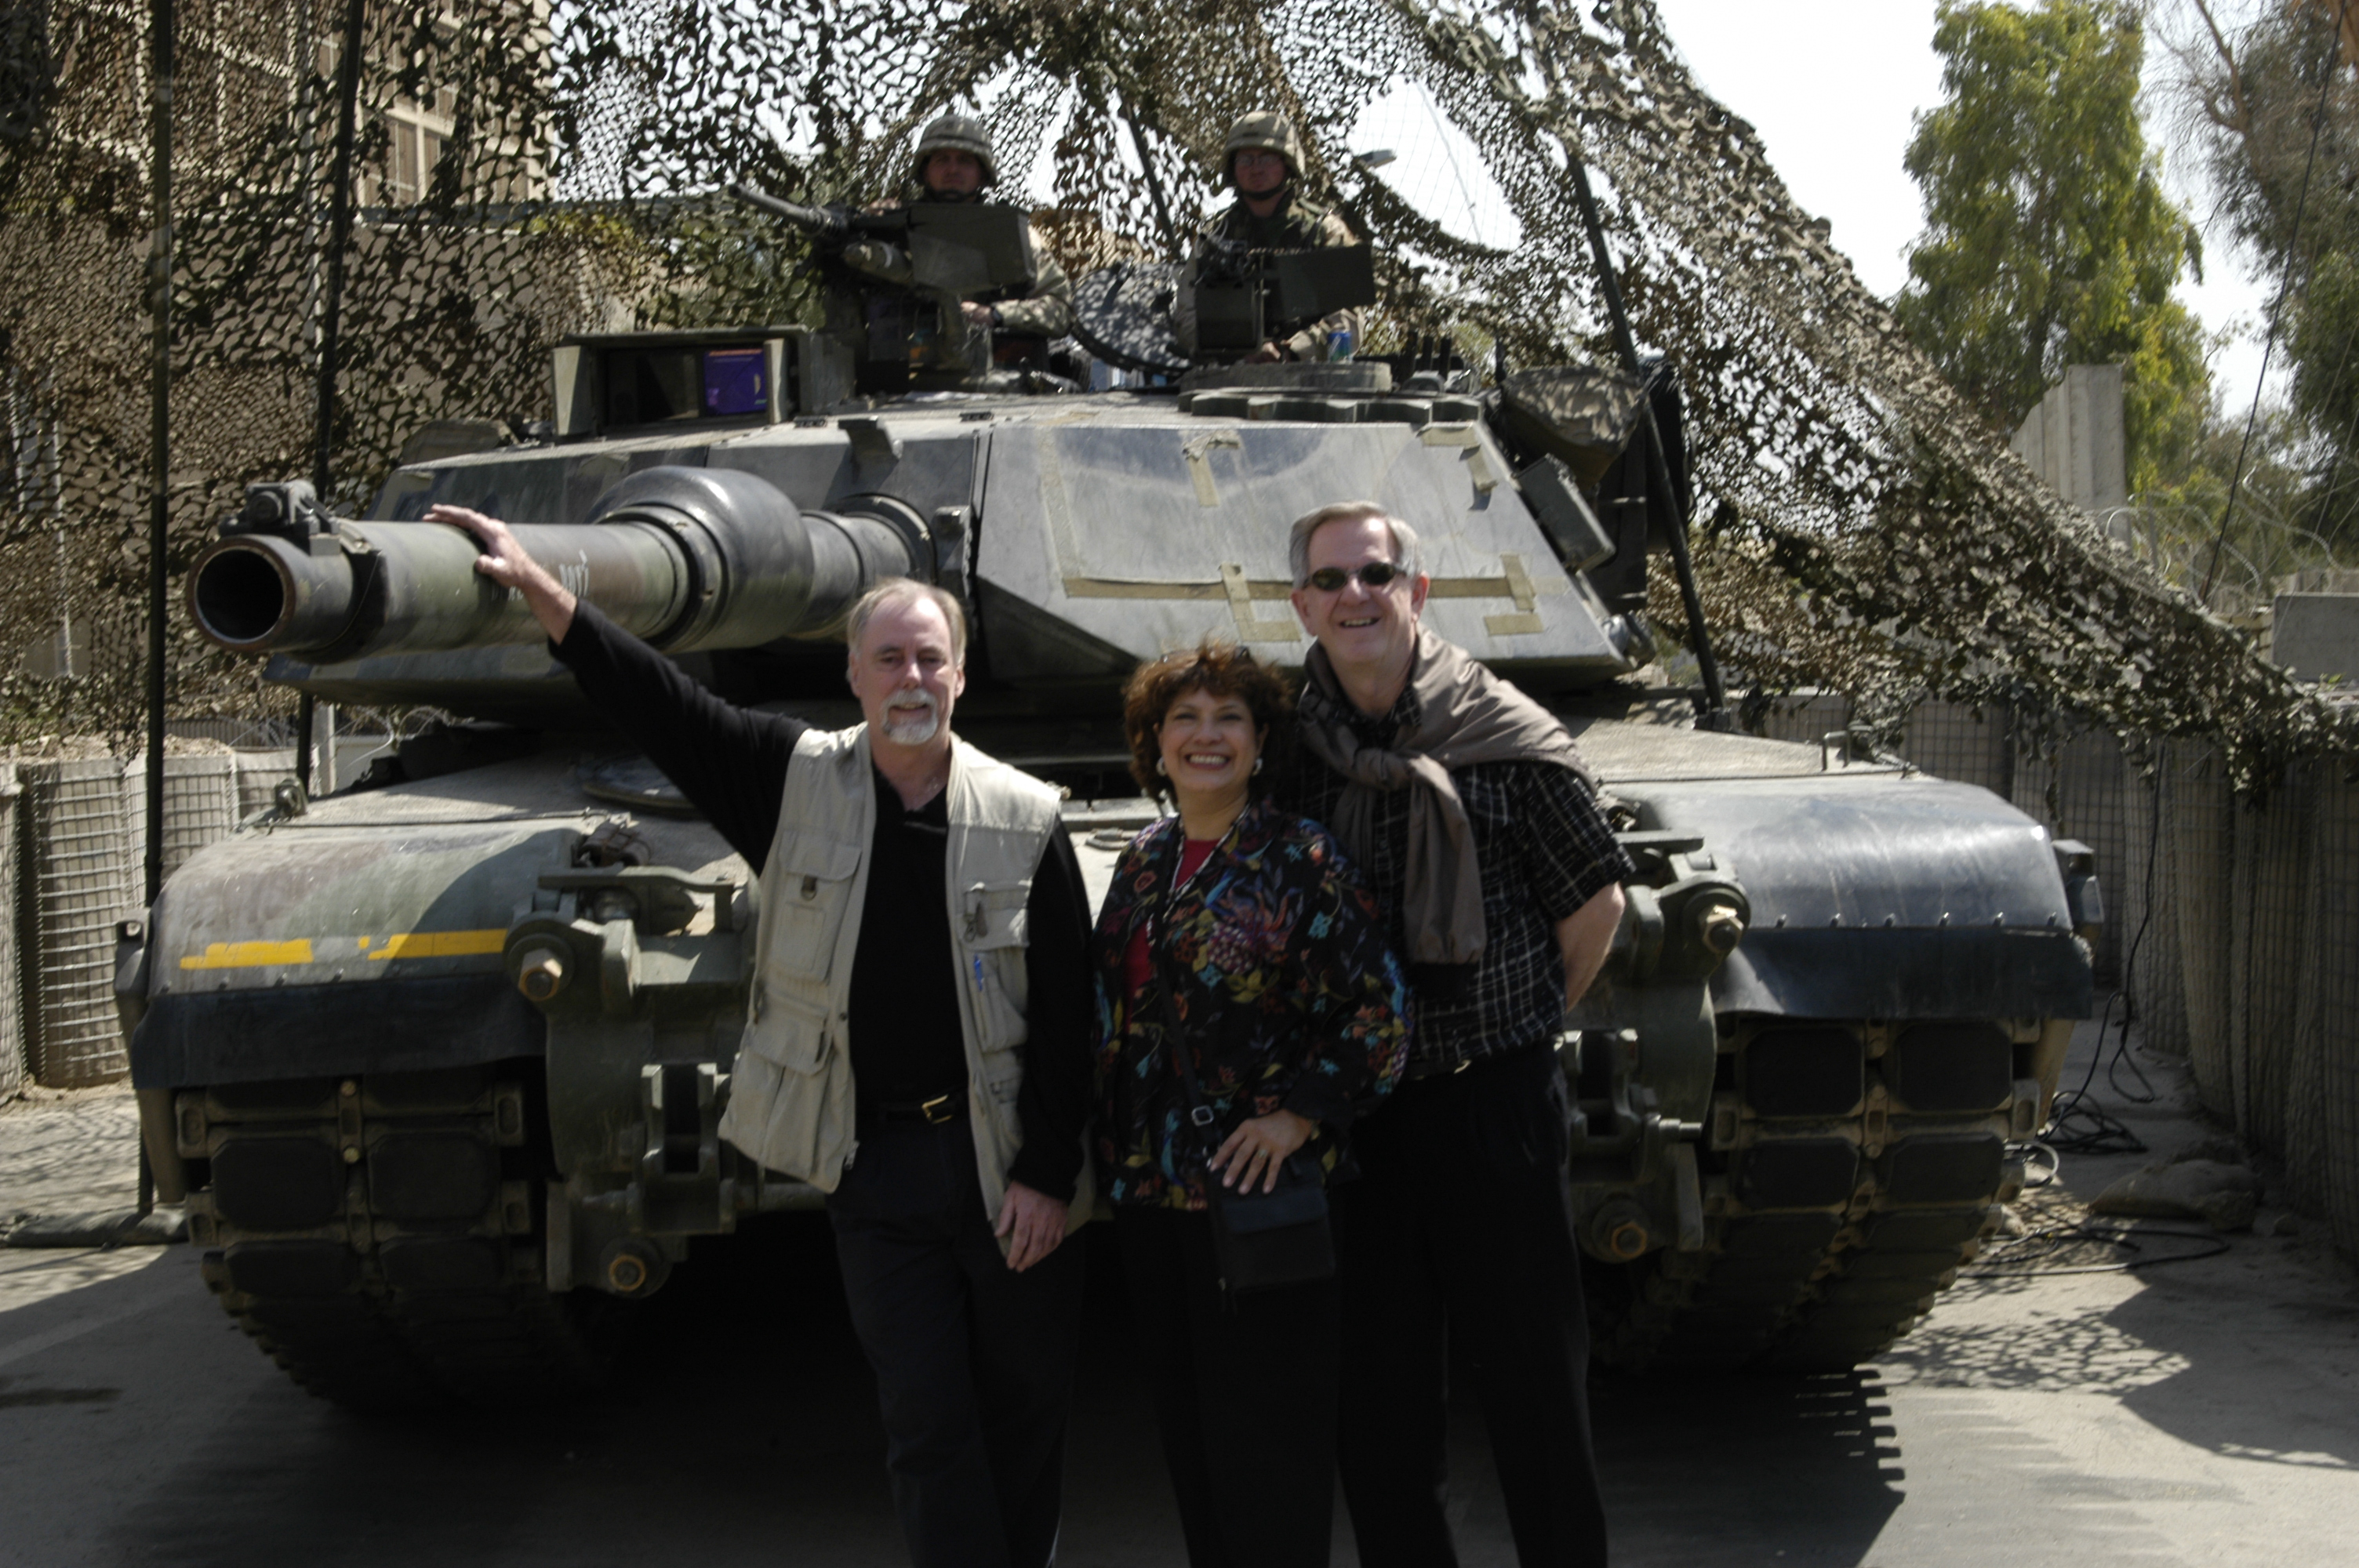 Image of Phil, Dennis, and Niki posin in front of a manned tank in Iraq.